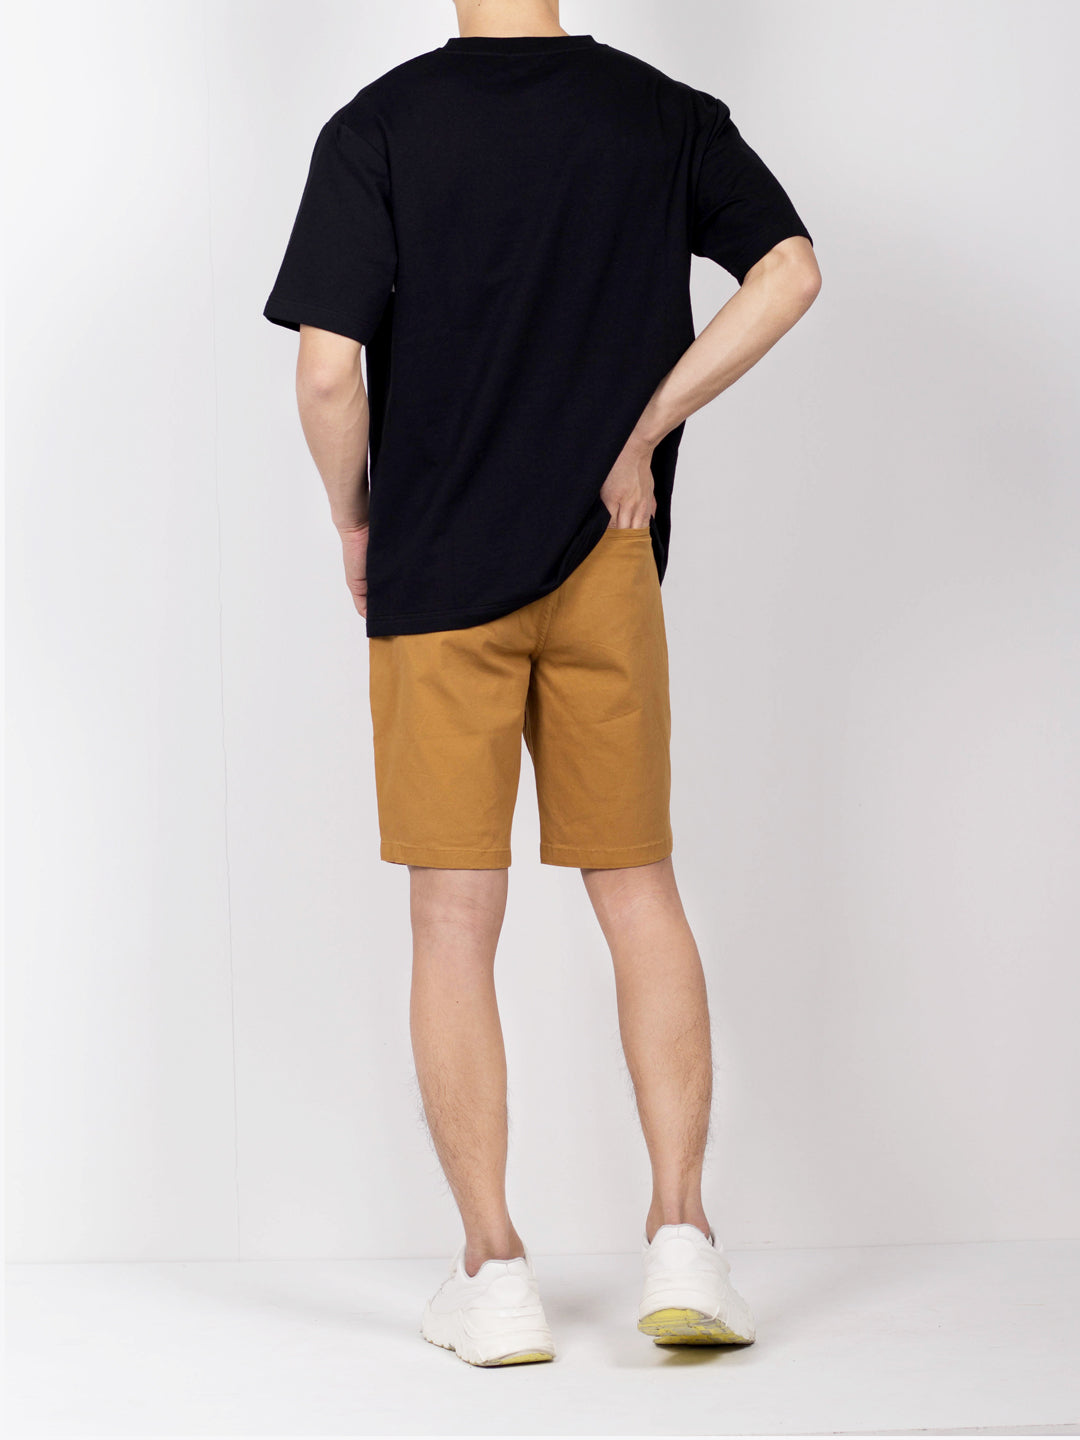 Men Oversize Fashion Short Sleeve Tee  - Black